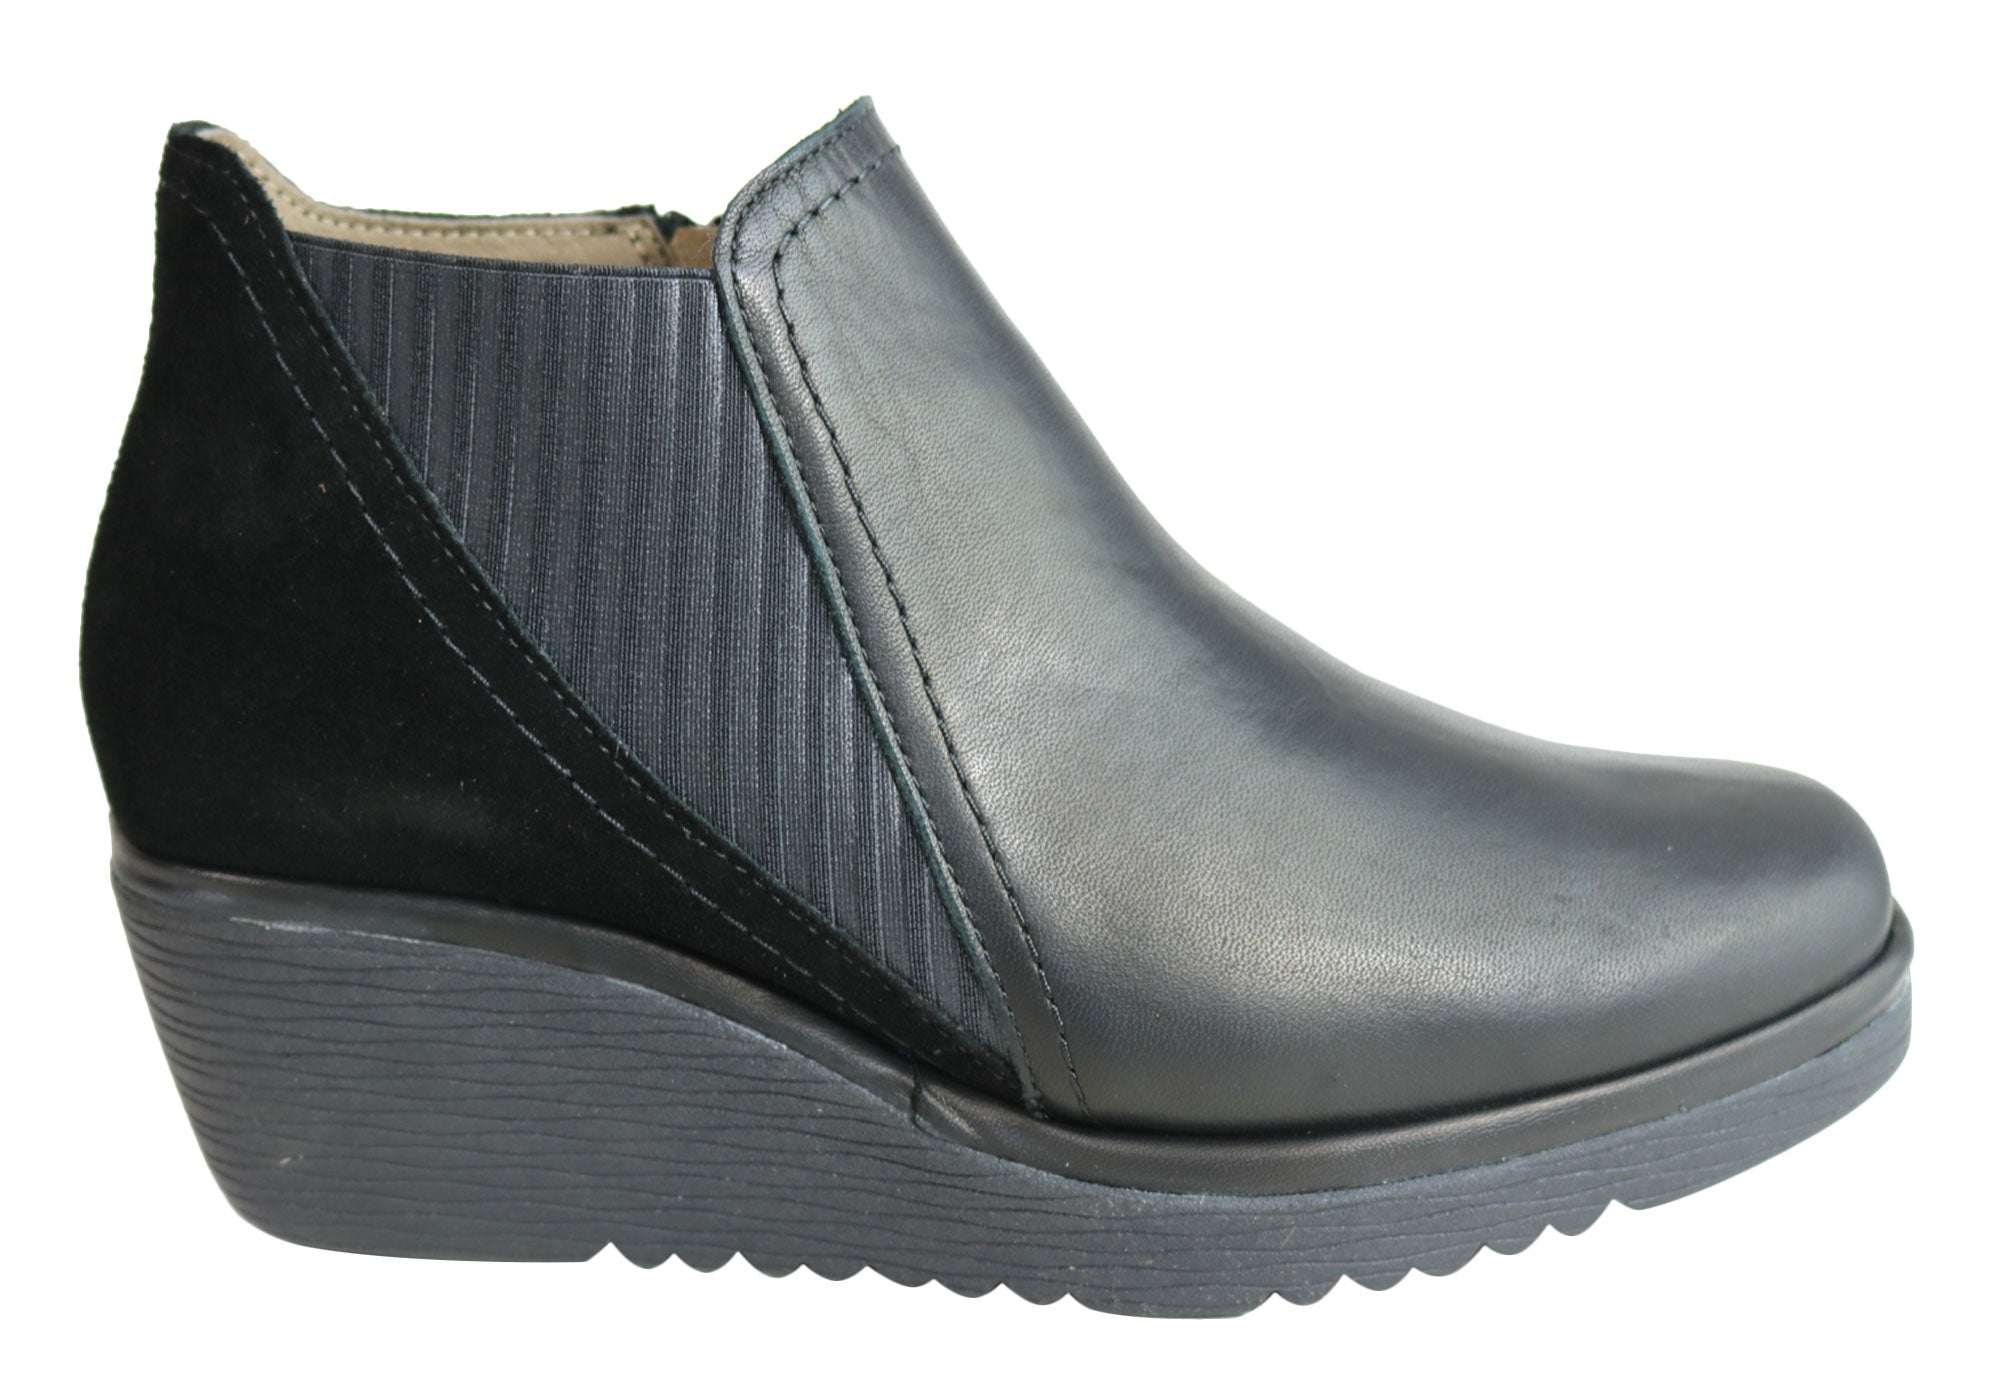 a488dd65bbd7 Details about Flex   Go Piper Womens Leather Wedge Ankle Boots Made In  Portugal